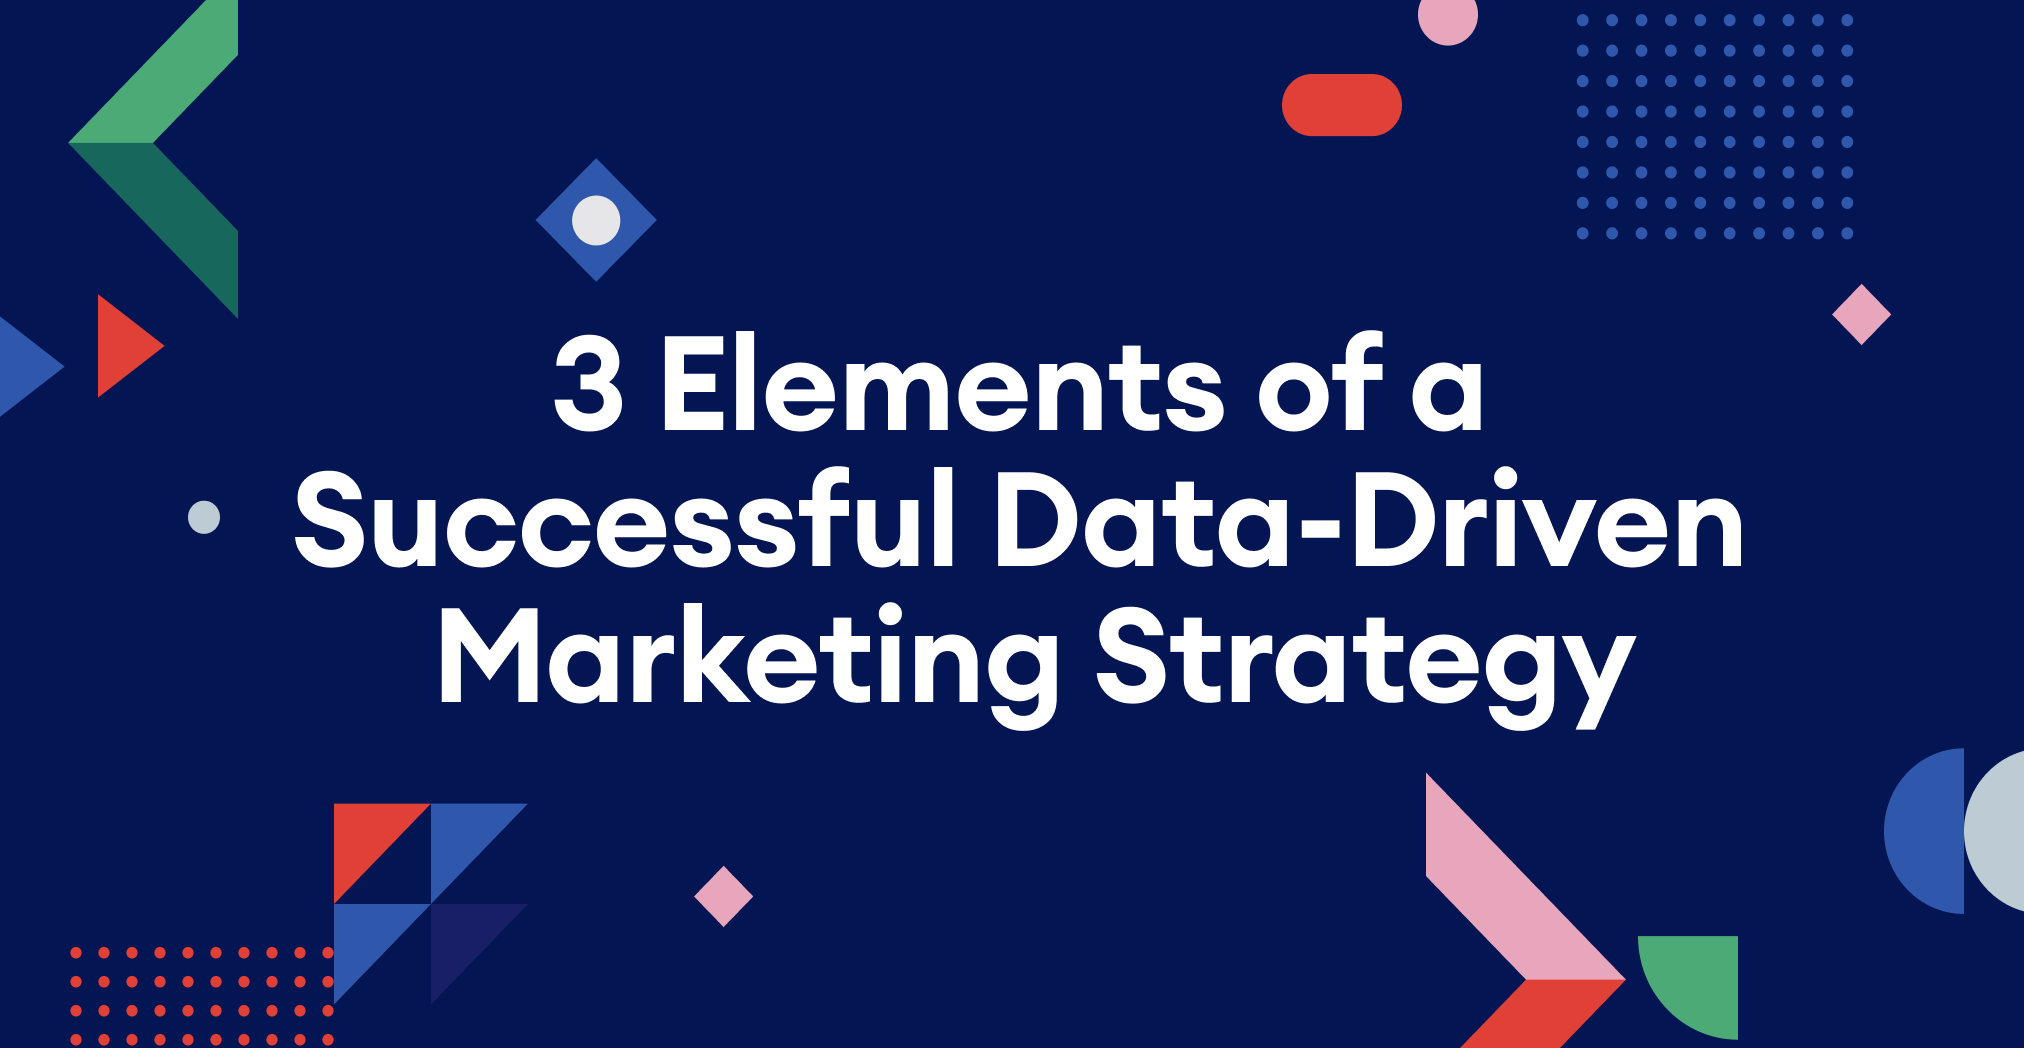 3 Elements of a Successful Data-Driven Marketing Strategy